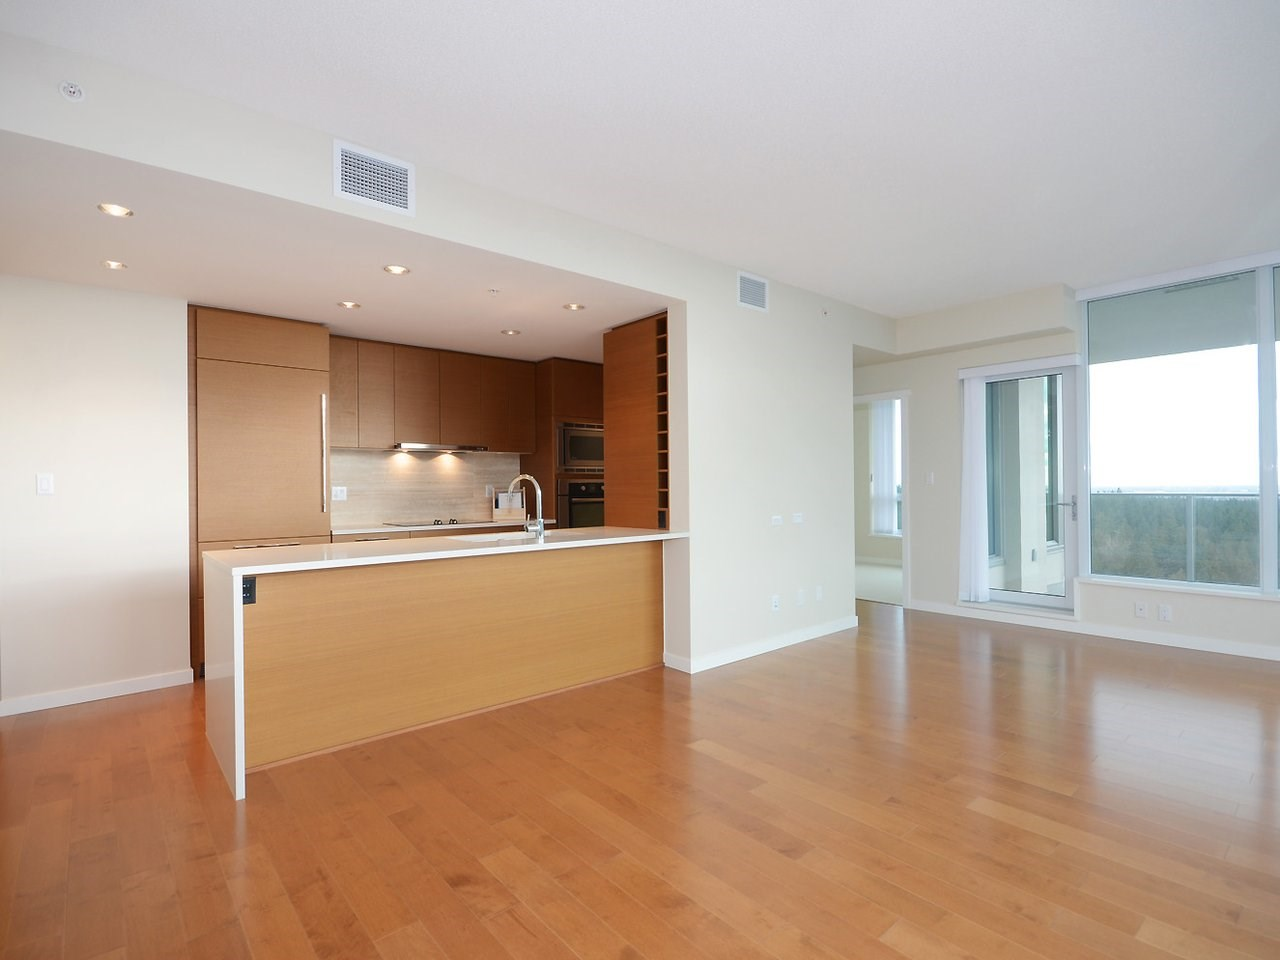 Condo Apartment at 2005 5728 BERTON AVENUE, Unit 2005, Vancouver West, British Columbia. Image 9